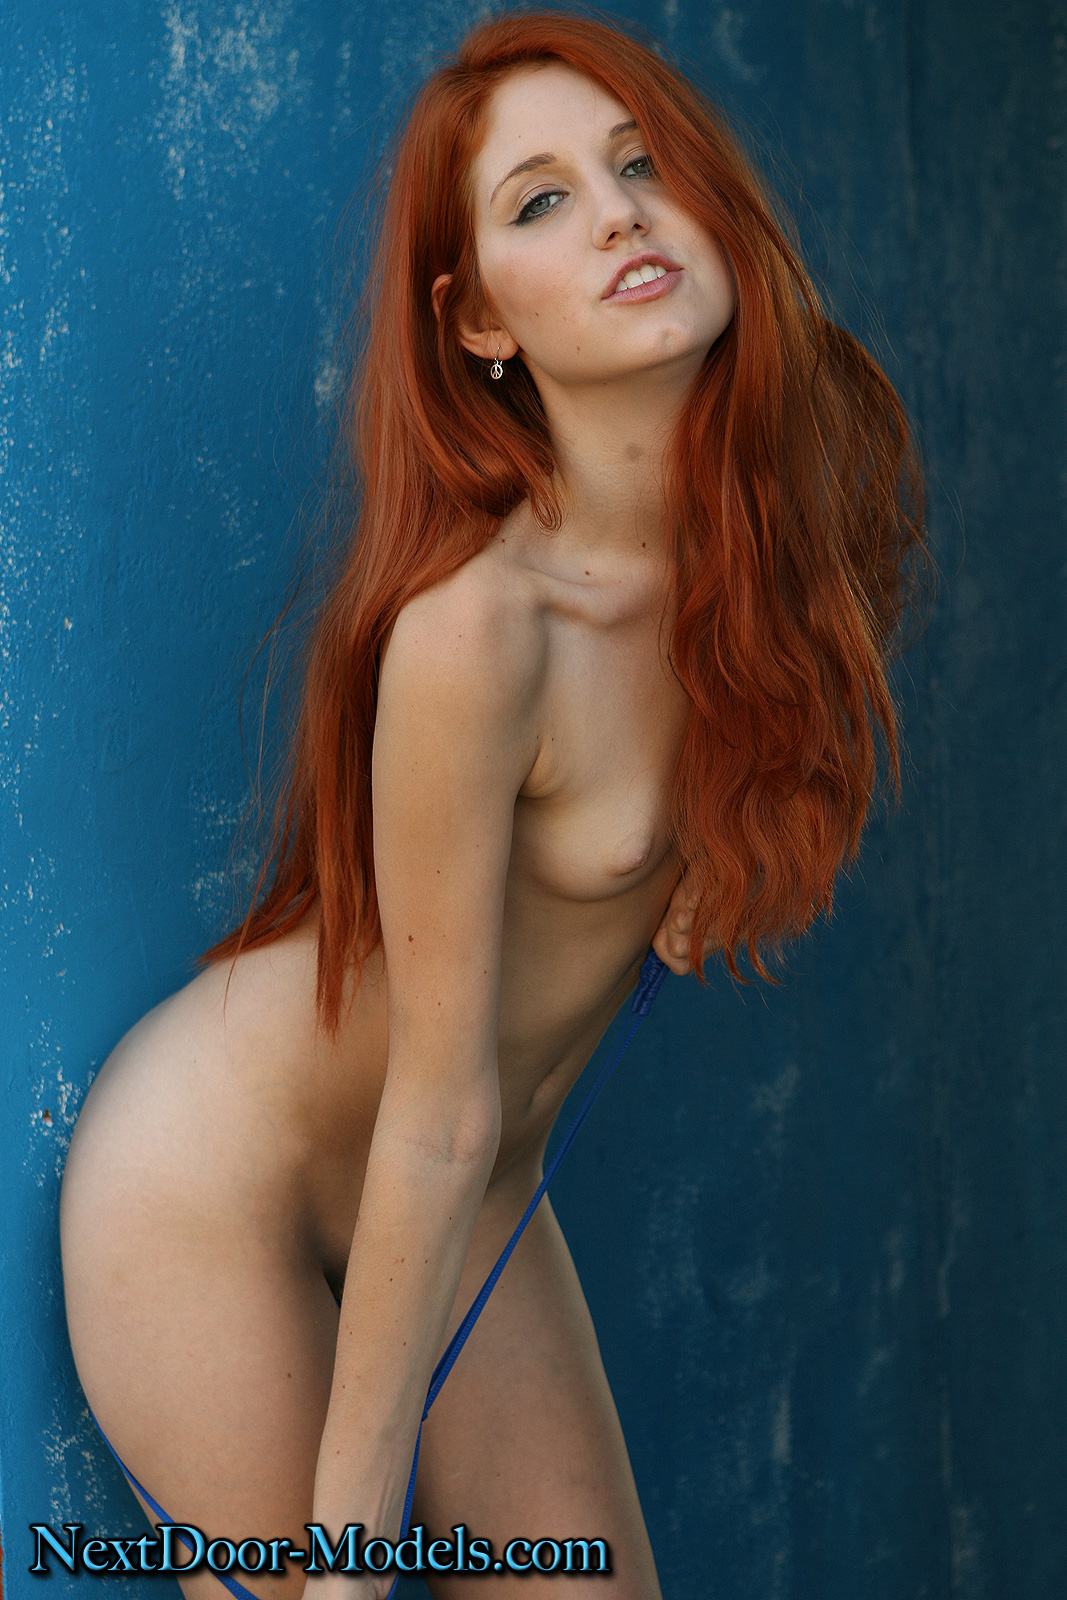 Redhead girls photos